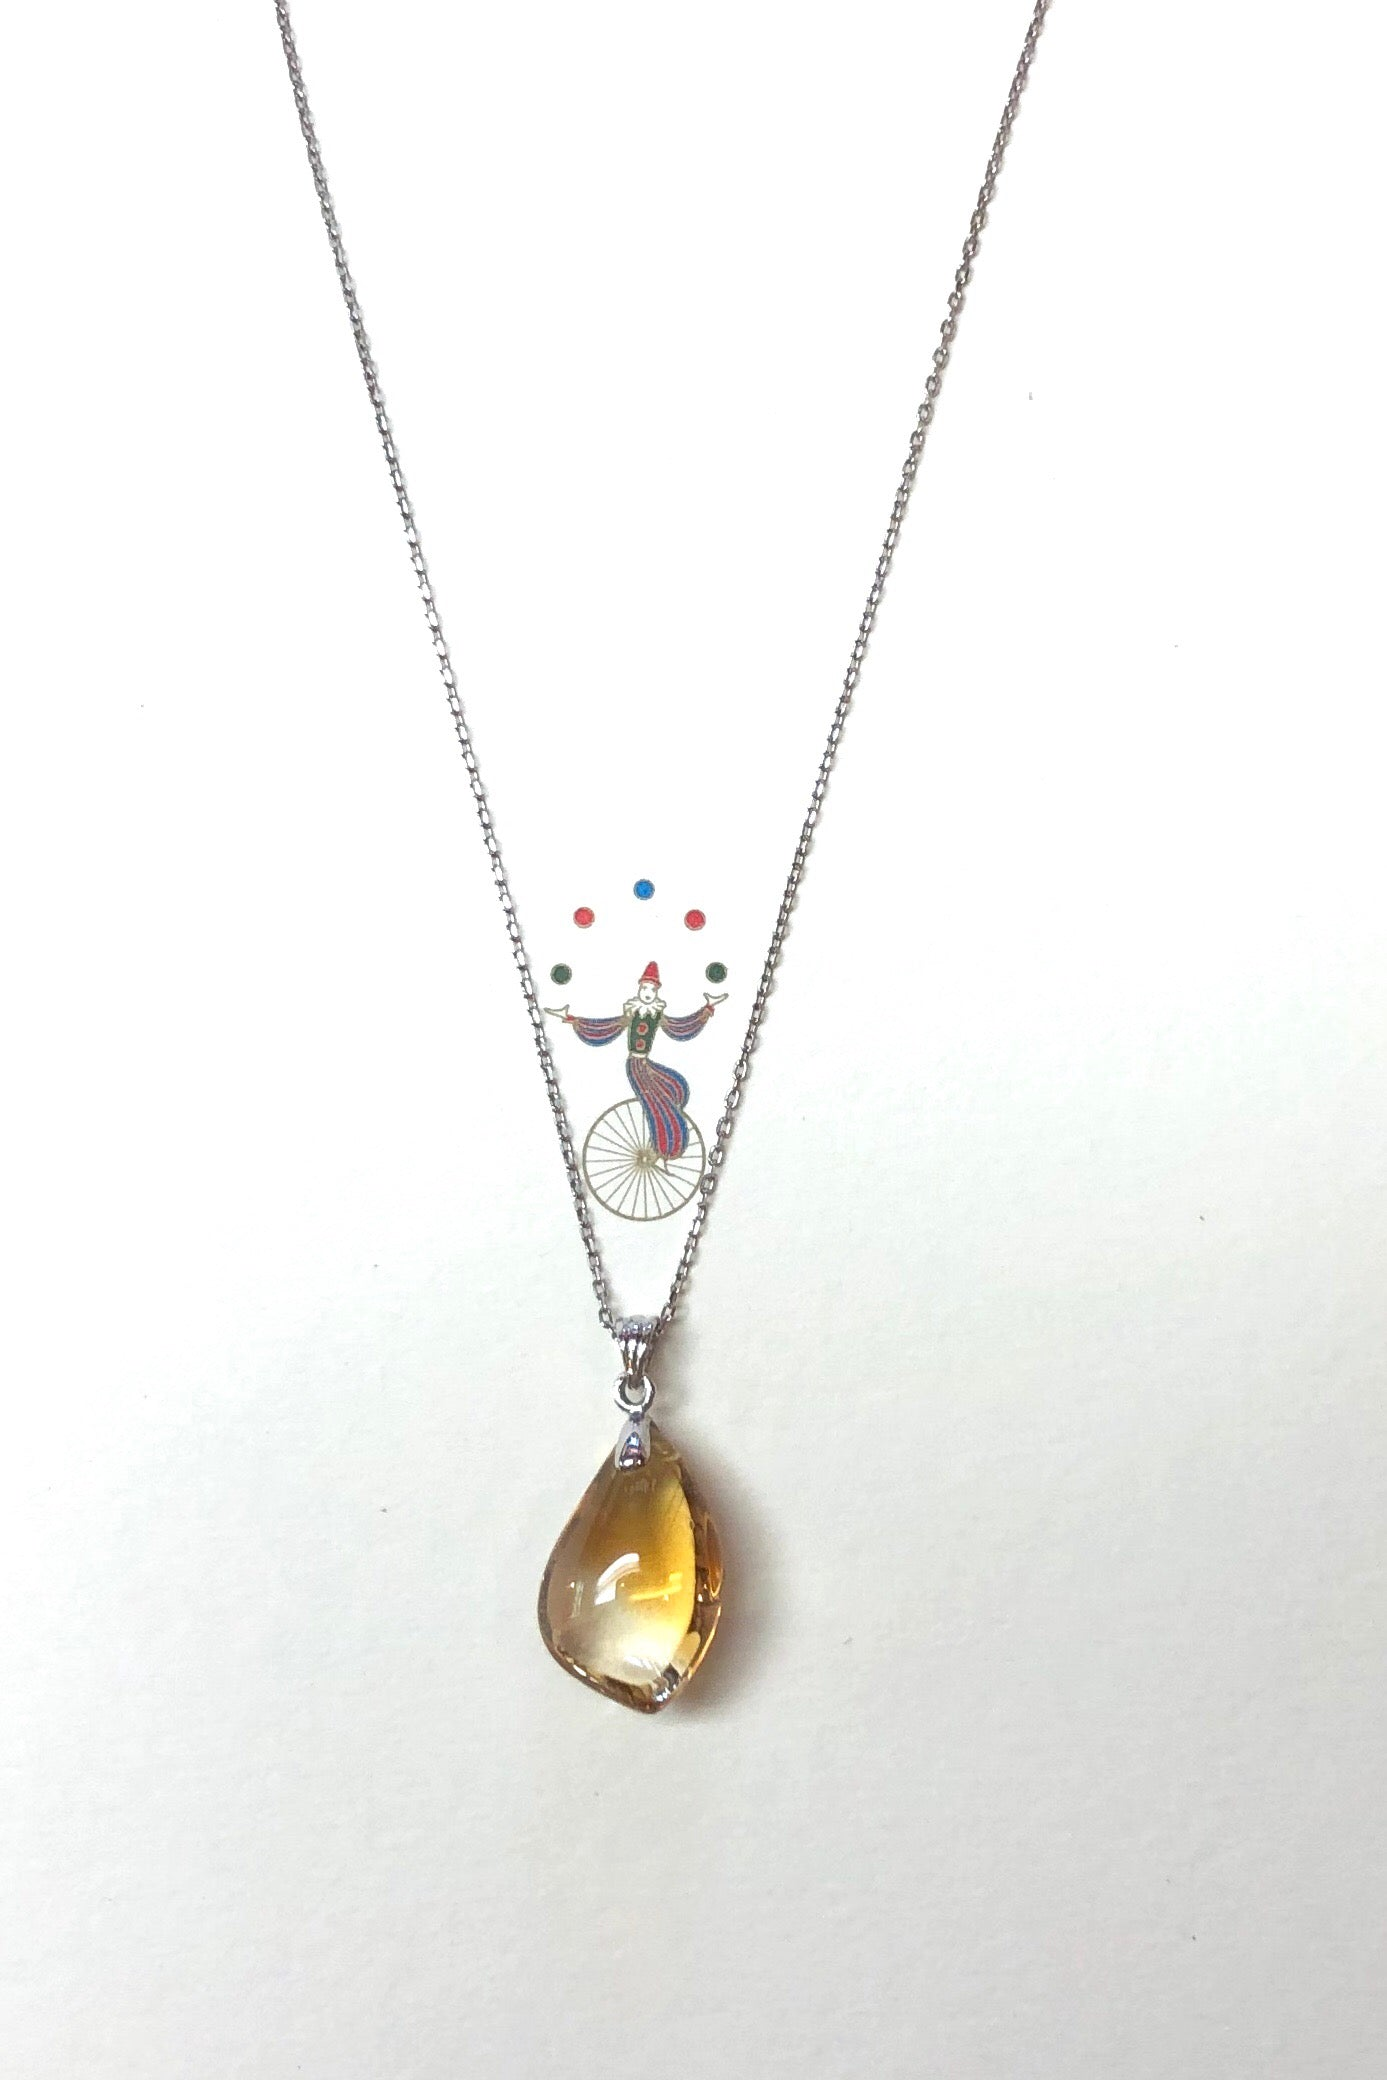 Pendant of Citrine on a Silver Chain, golden citrine crystal pendant